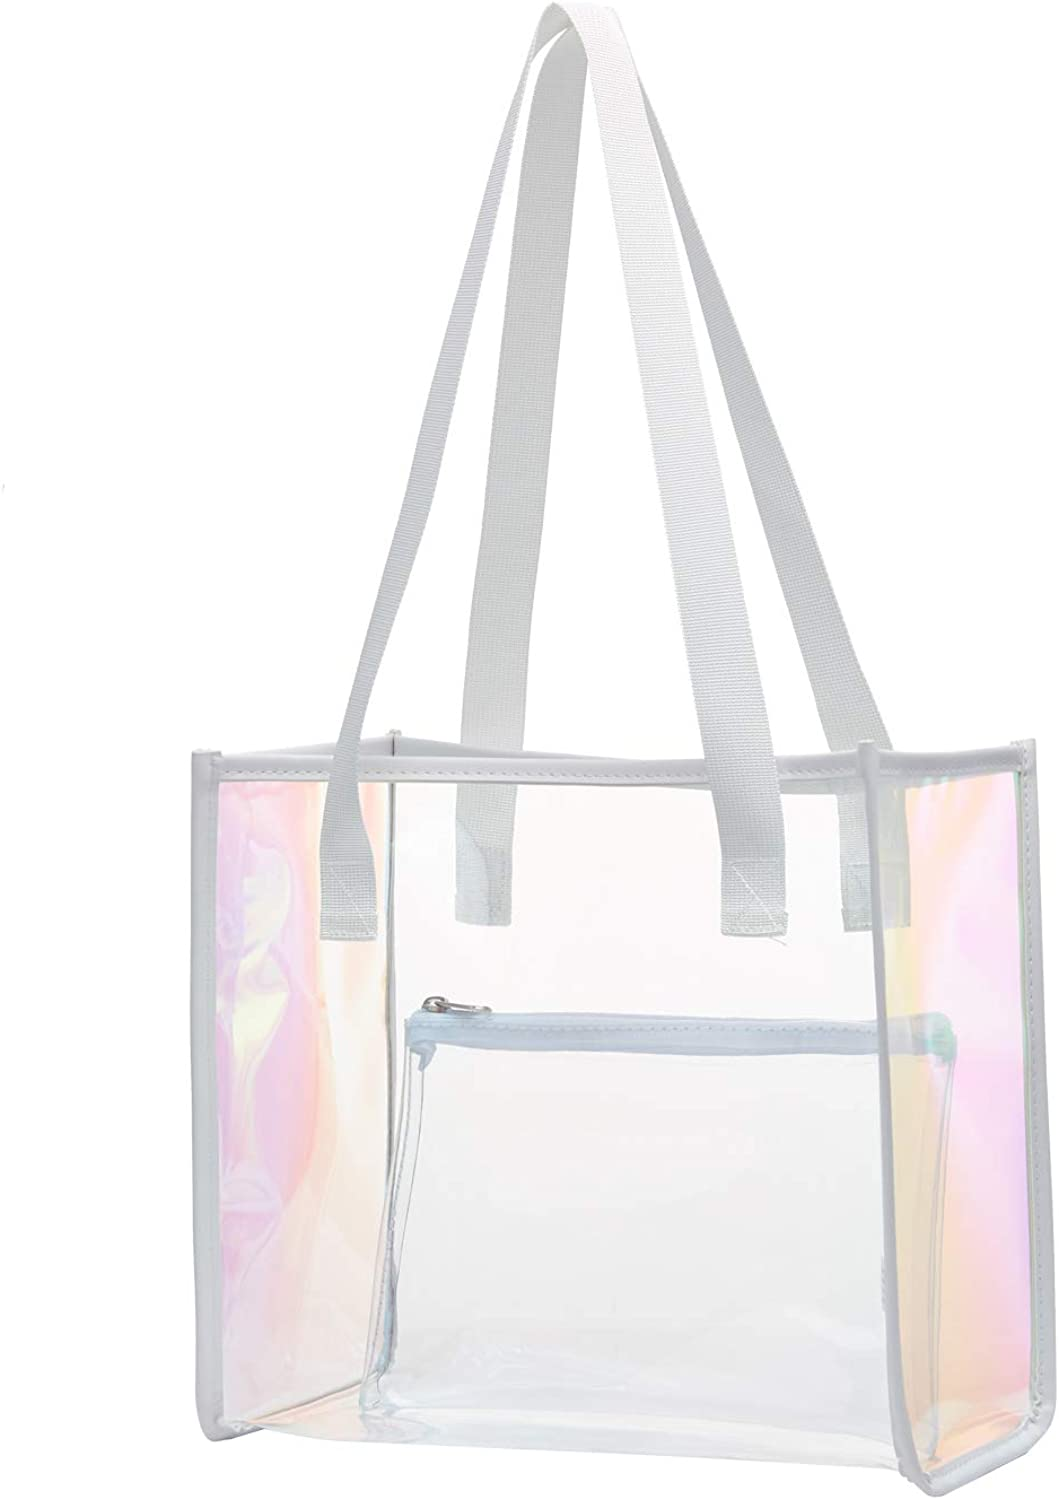 Work Security Travel Clear Purse Clear Bag Stadium Approved Stadium Venues or Concert(2 Pack) MAY TREE Clear Tote Bag Great for Sports Games